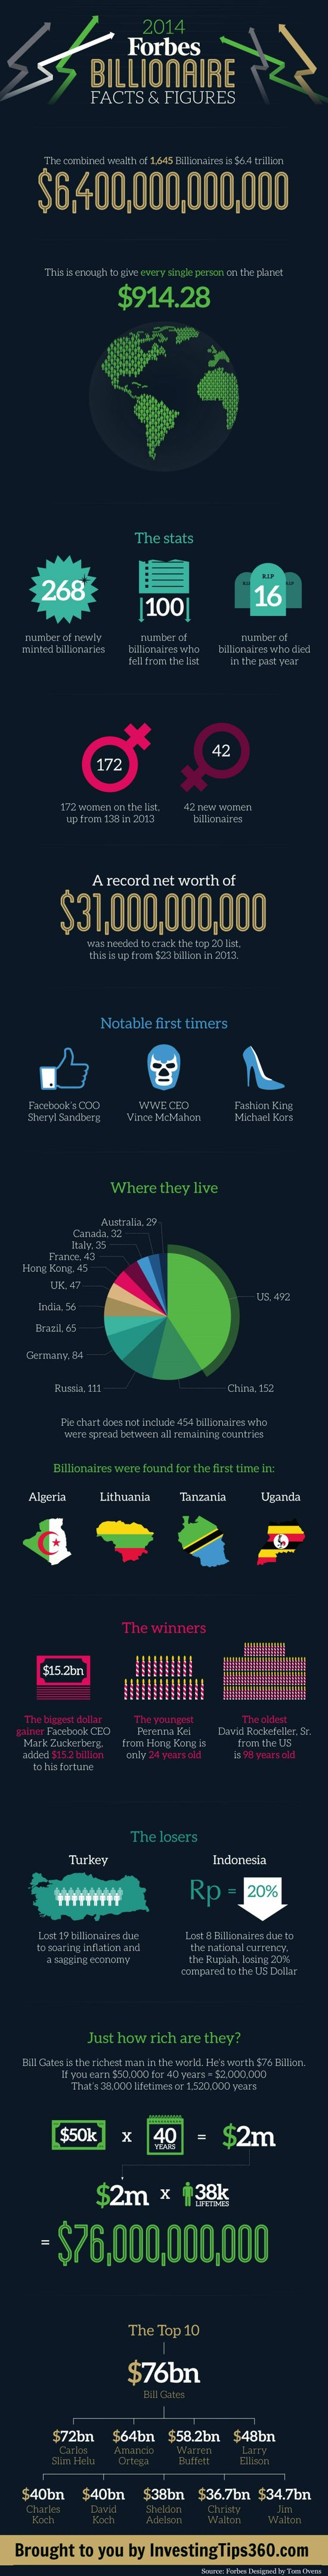 2014-forbes-billionaire-list-facts--figures